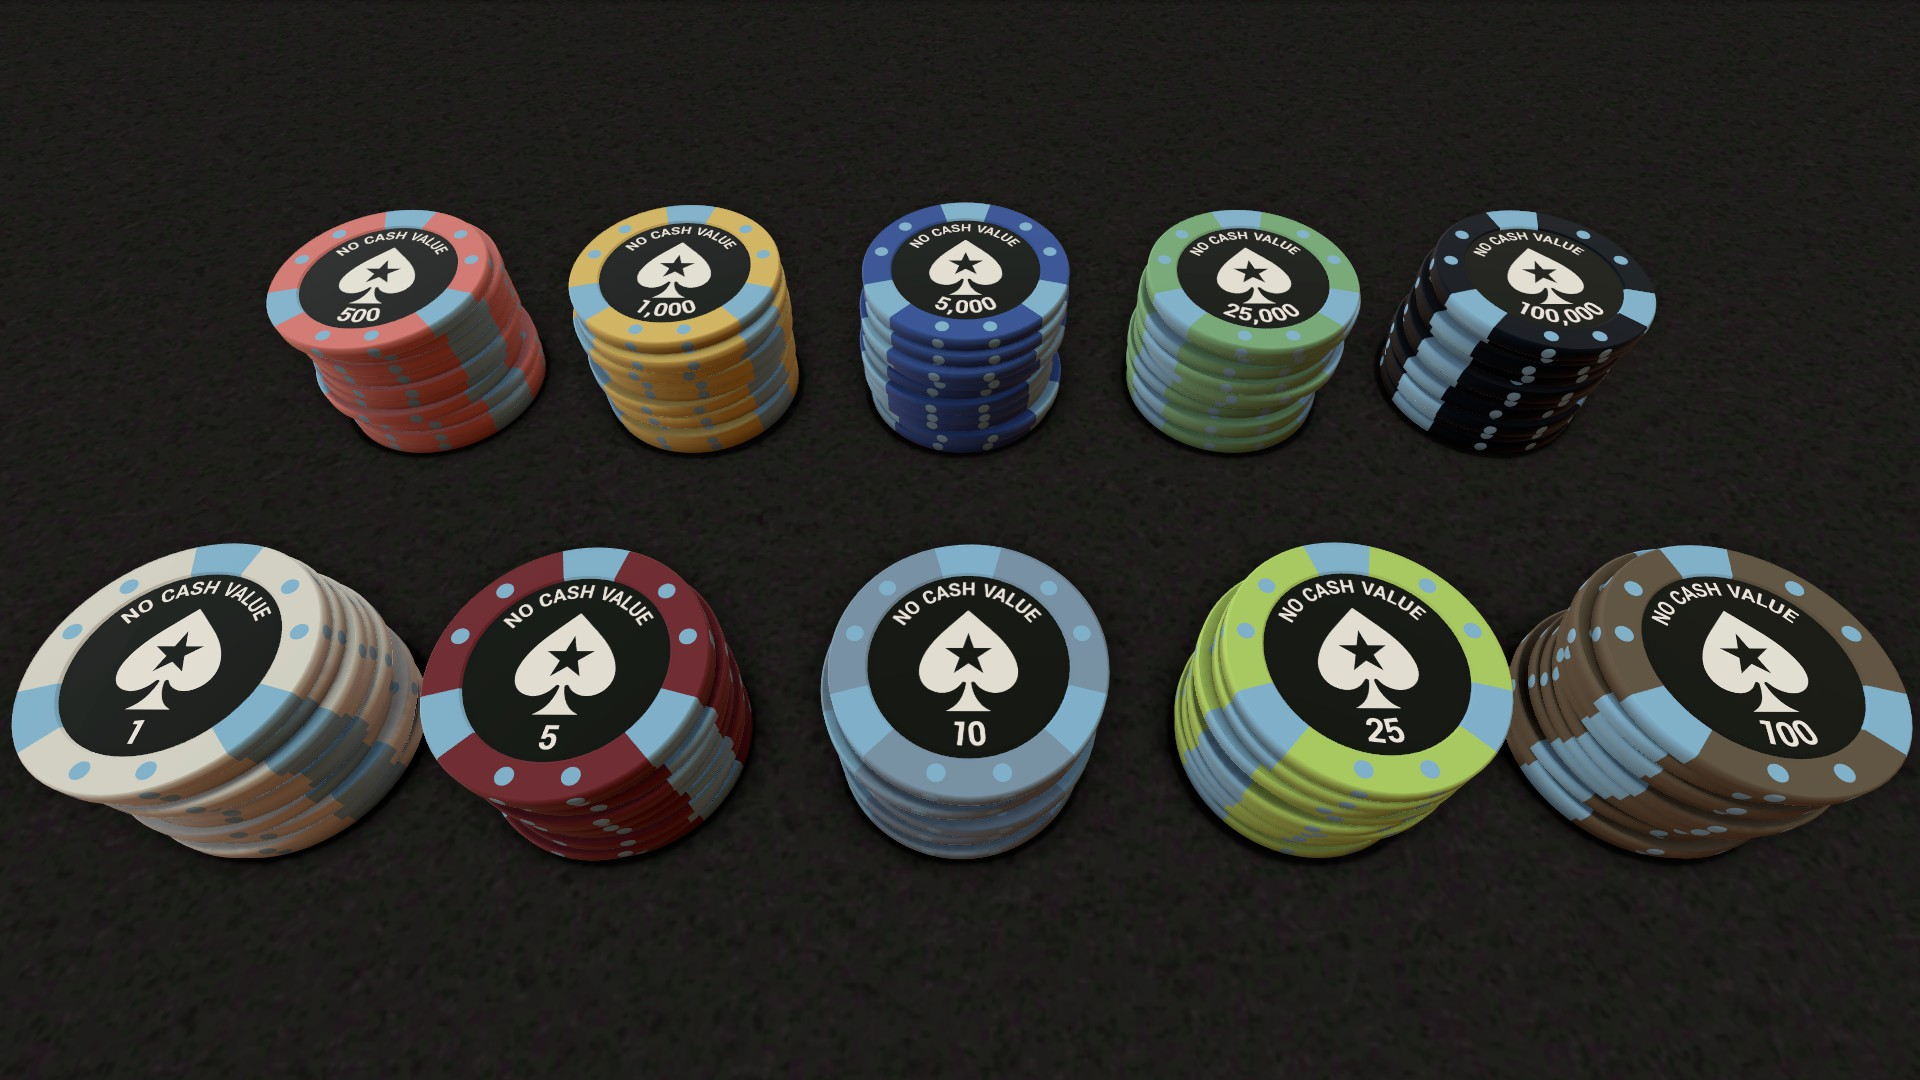 Steam poker reddit procter and gamble financial ratio analysis